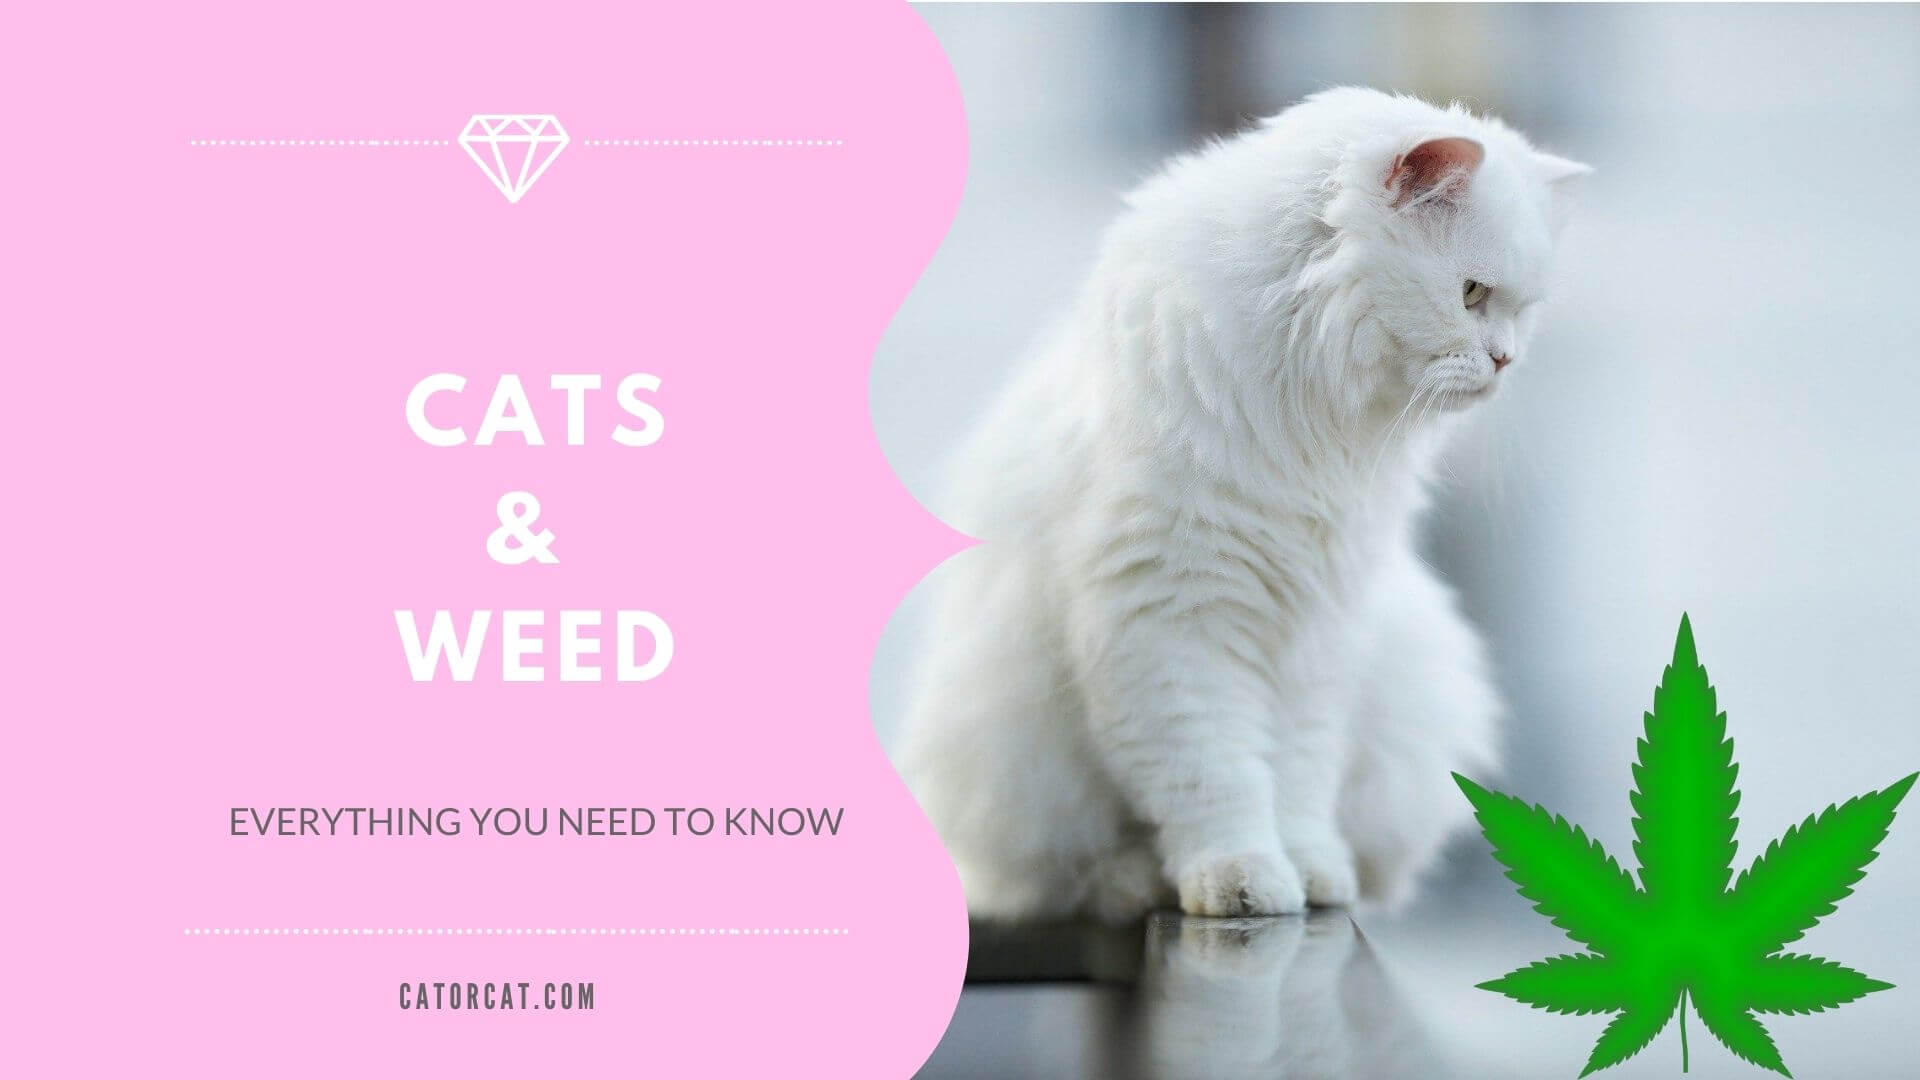 cats and weed